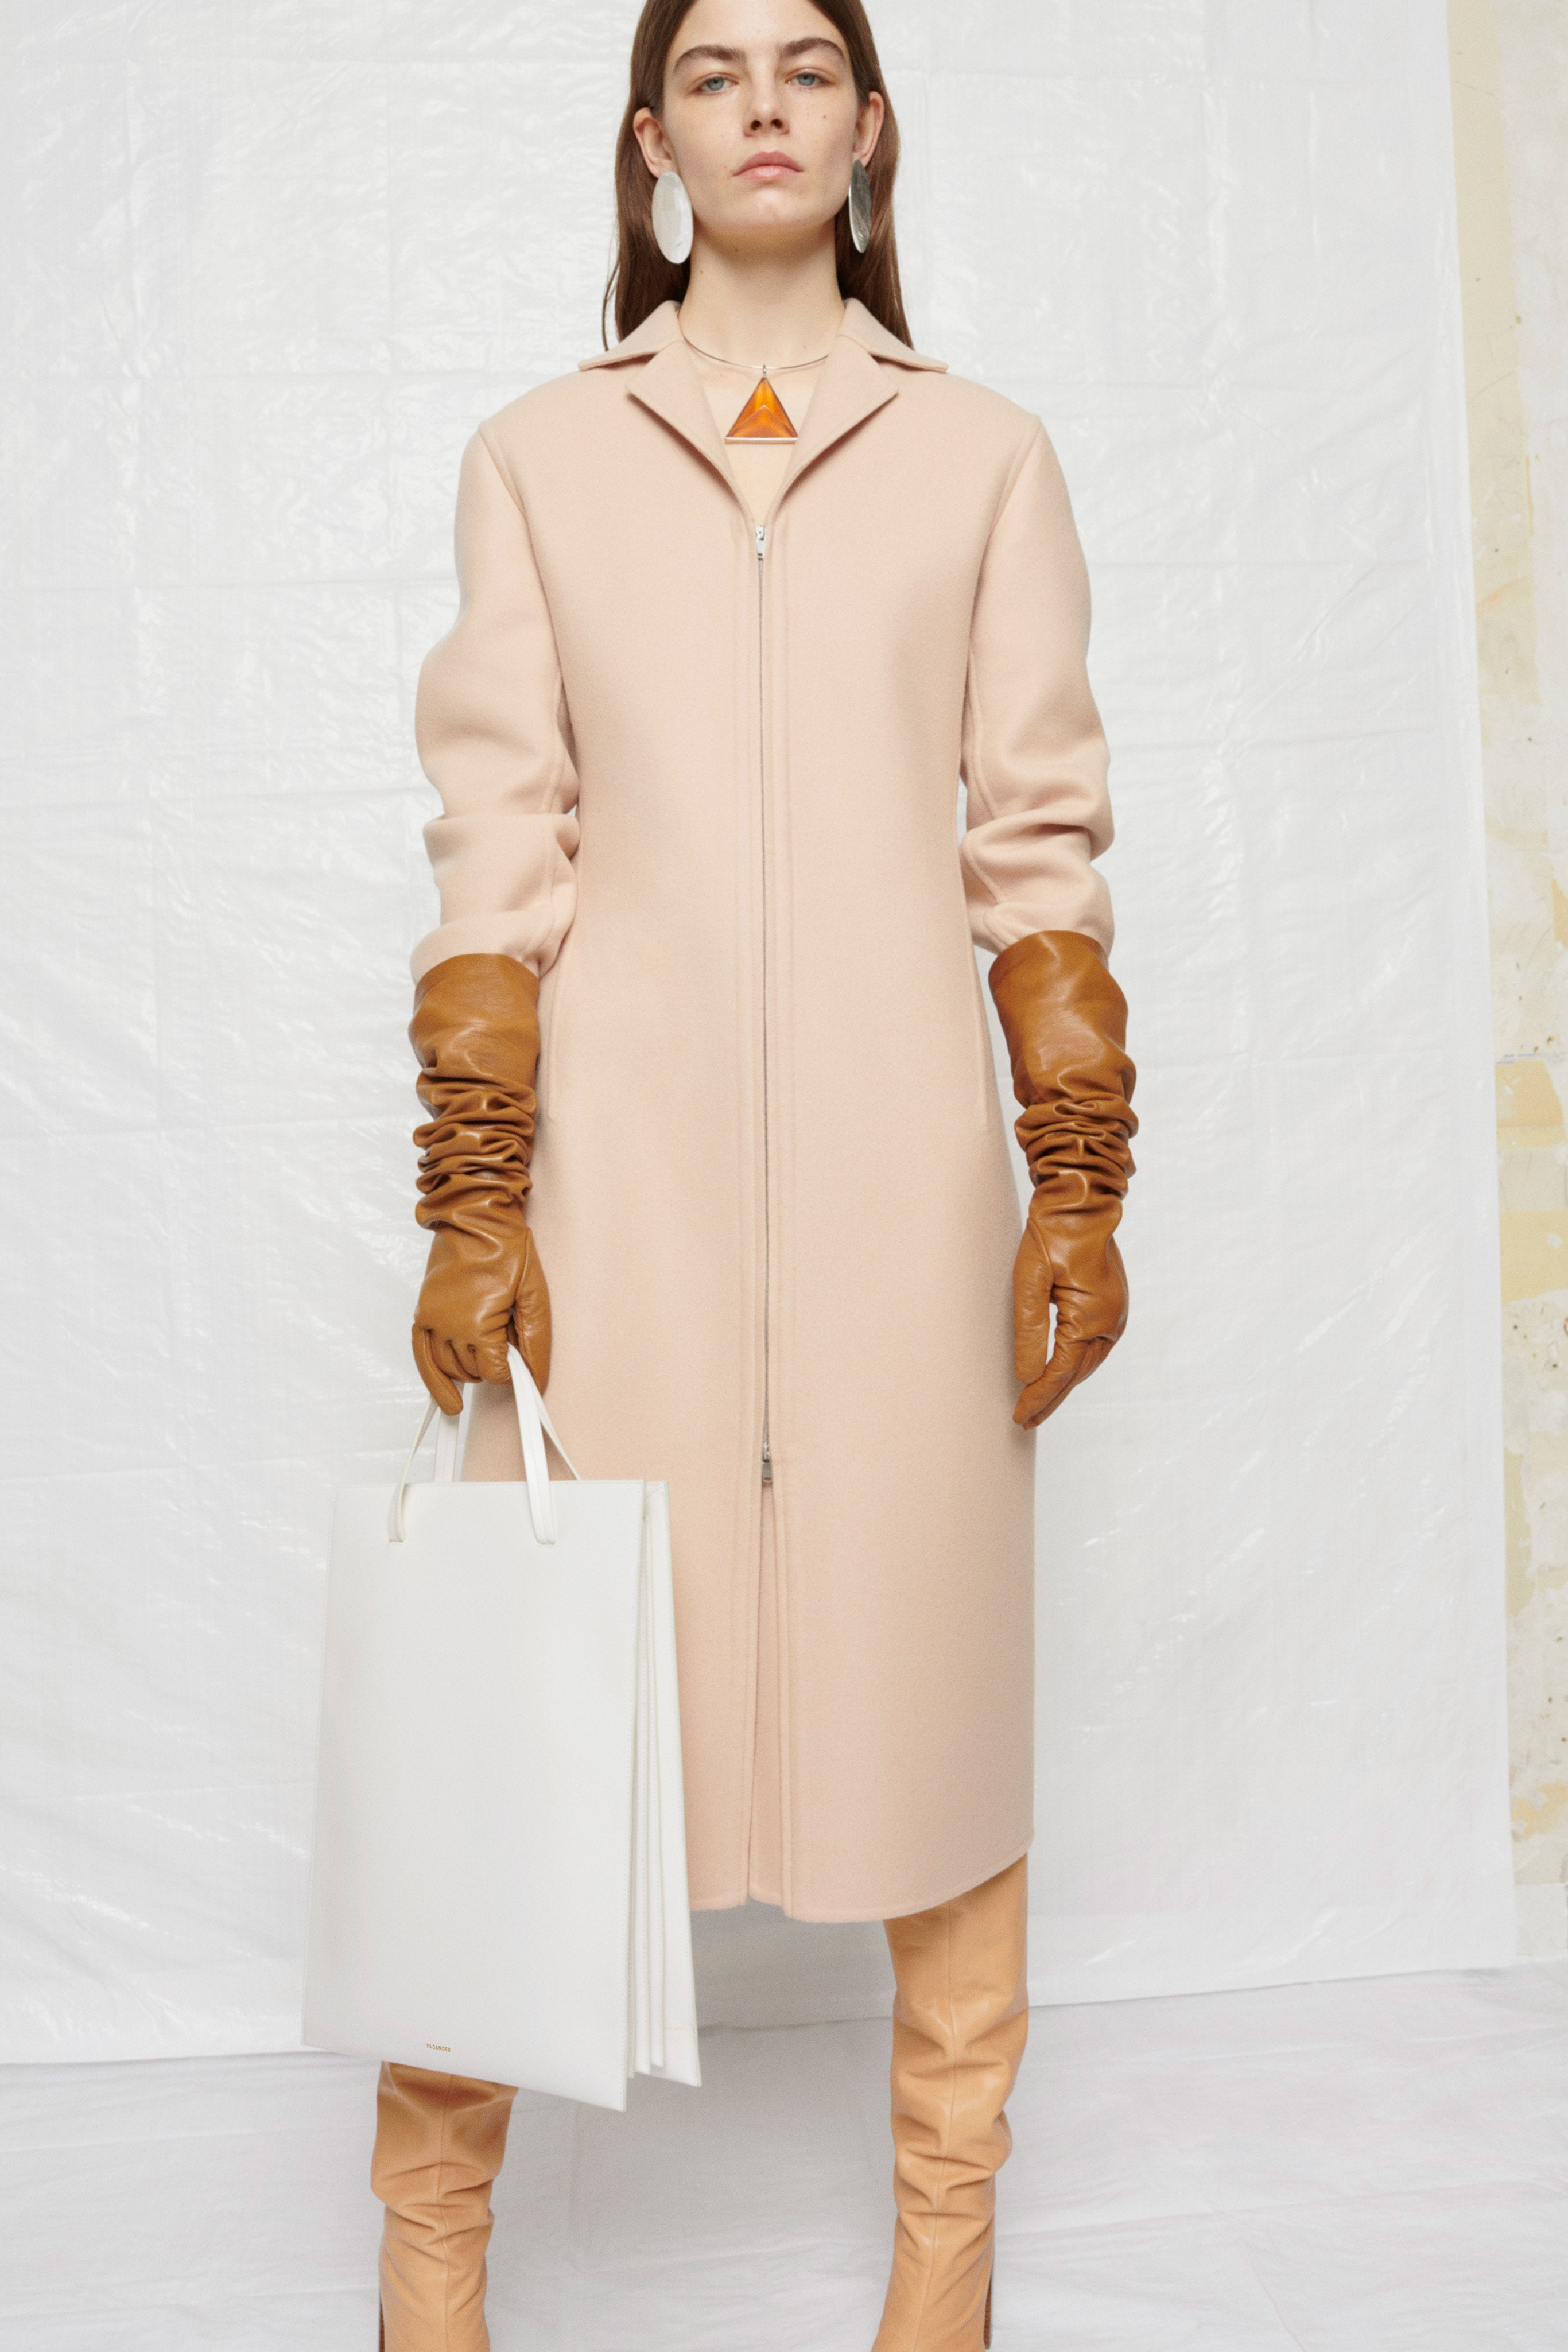 For walks in the fresh air: A seasonal collection of Jil Sander arrived at Asthik (photo 31)